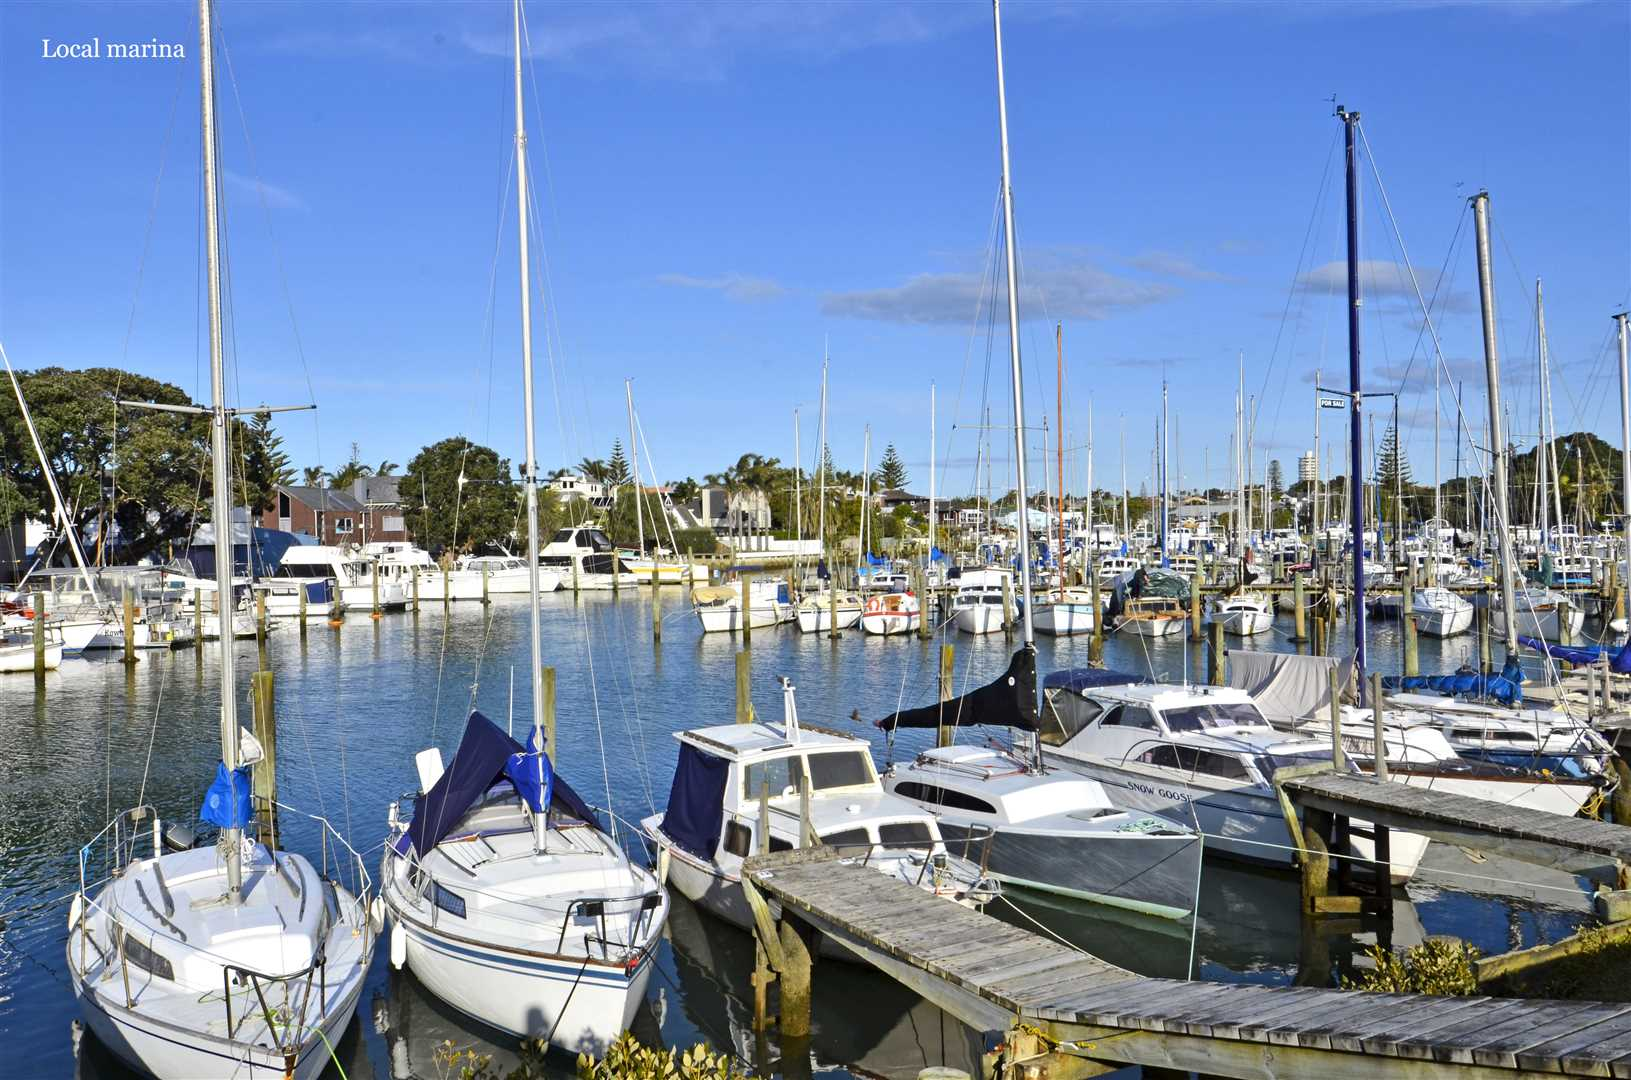 Close to Milford Marina and Reserve